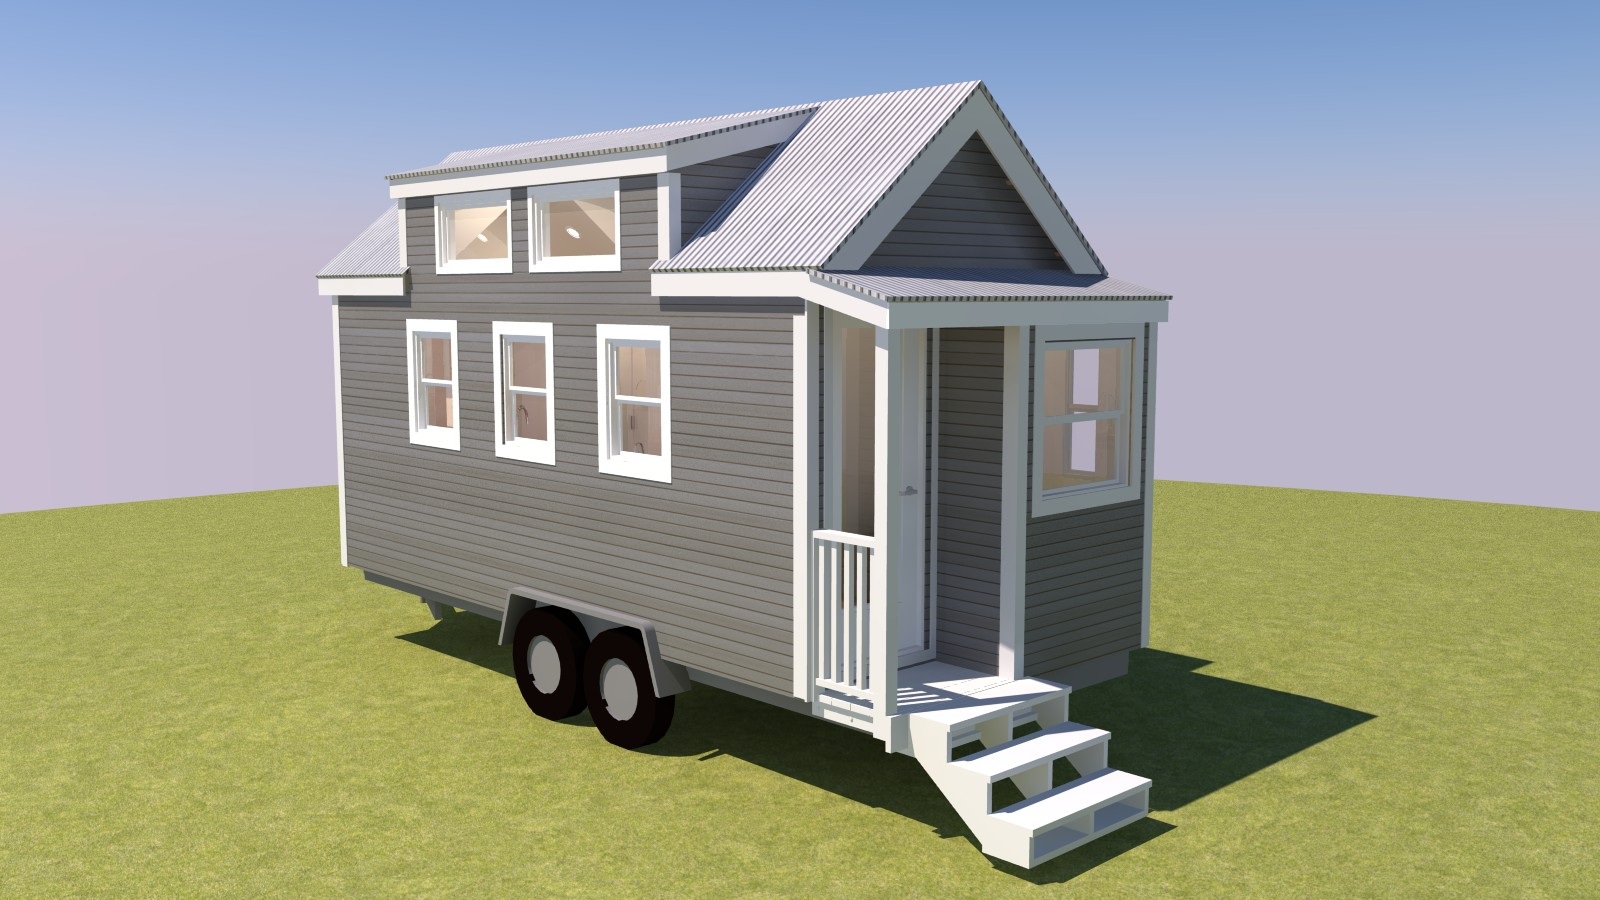 Talmage 20 tiny house plans for Small house exterior